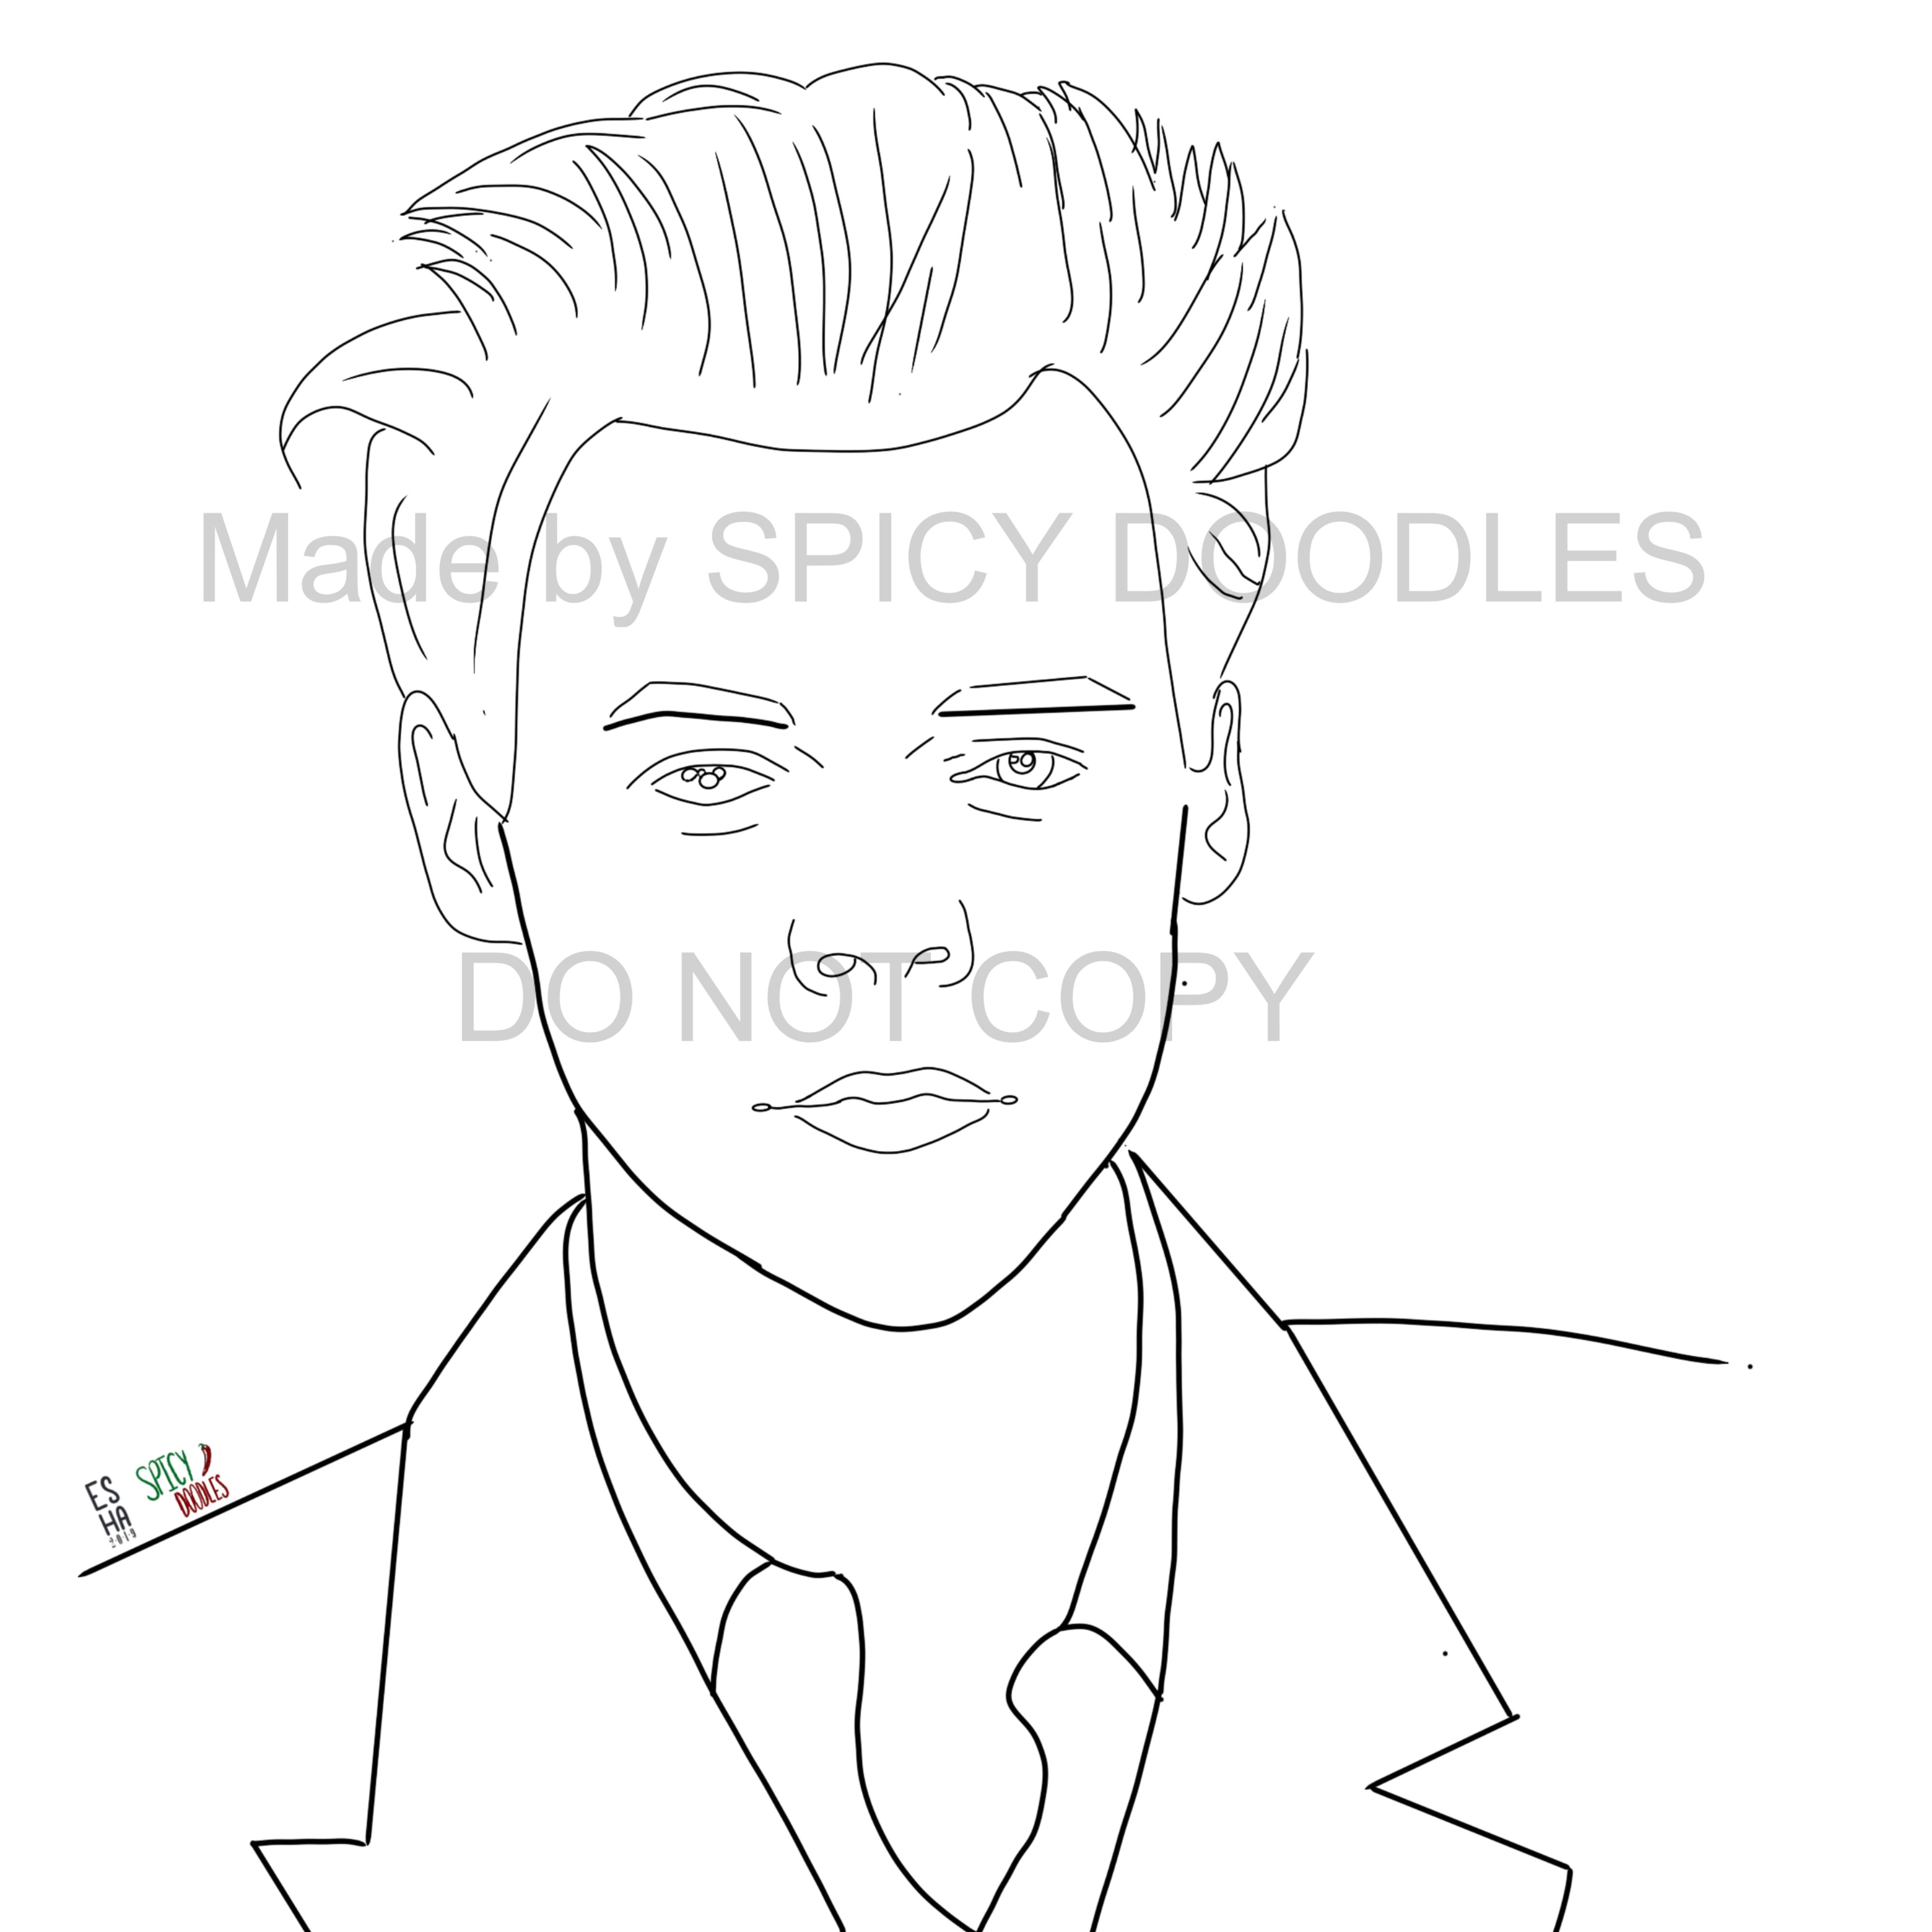 harry styles coloring page harry styles coloring page on storenvy coloring page styles harry